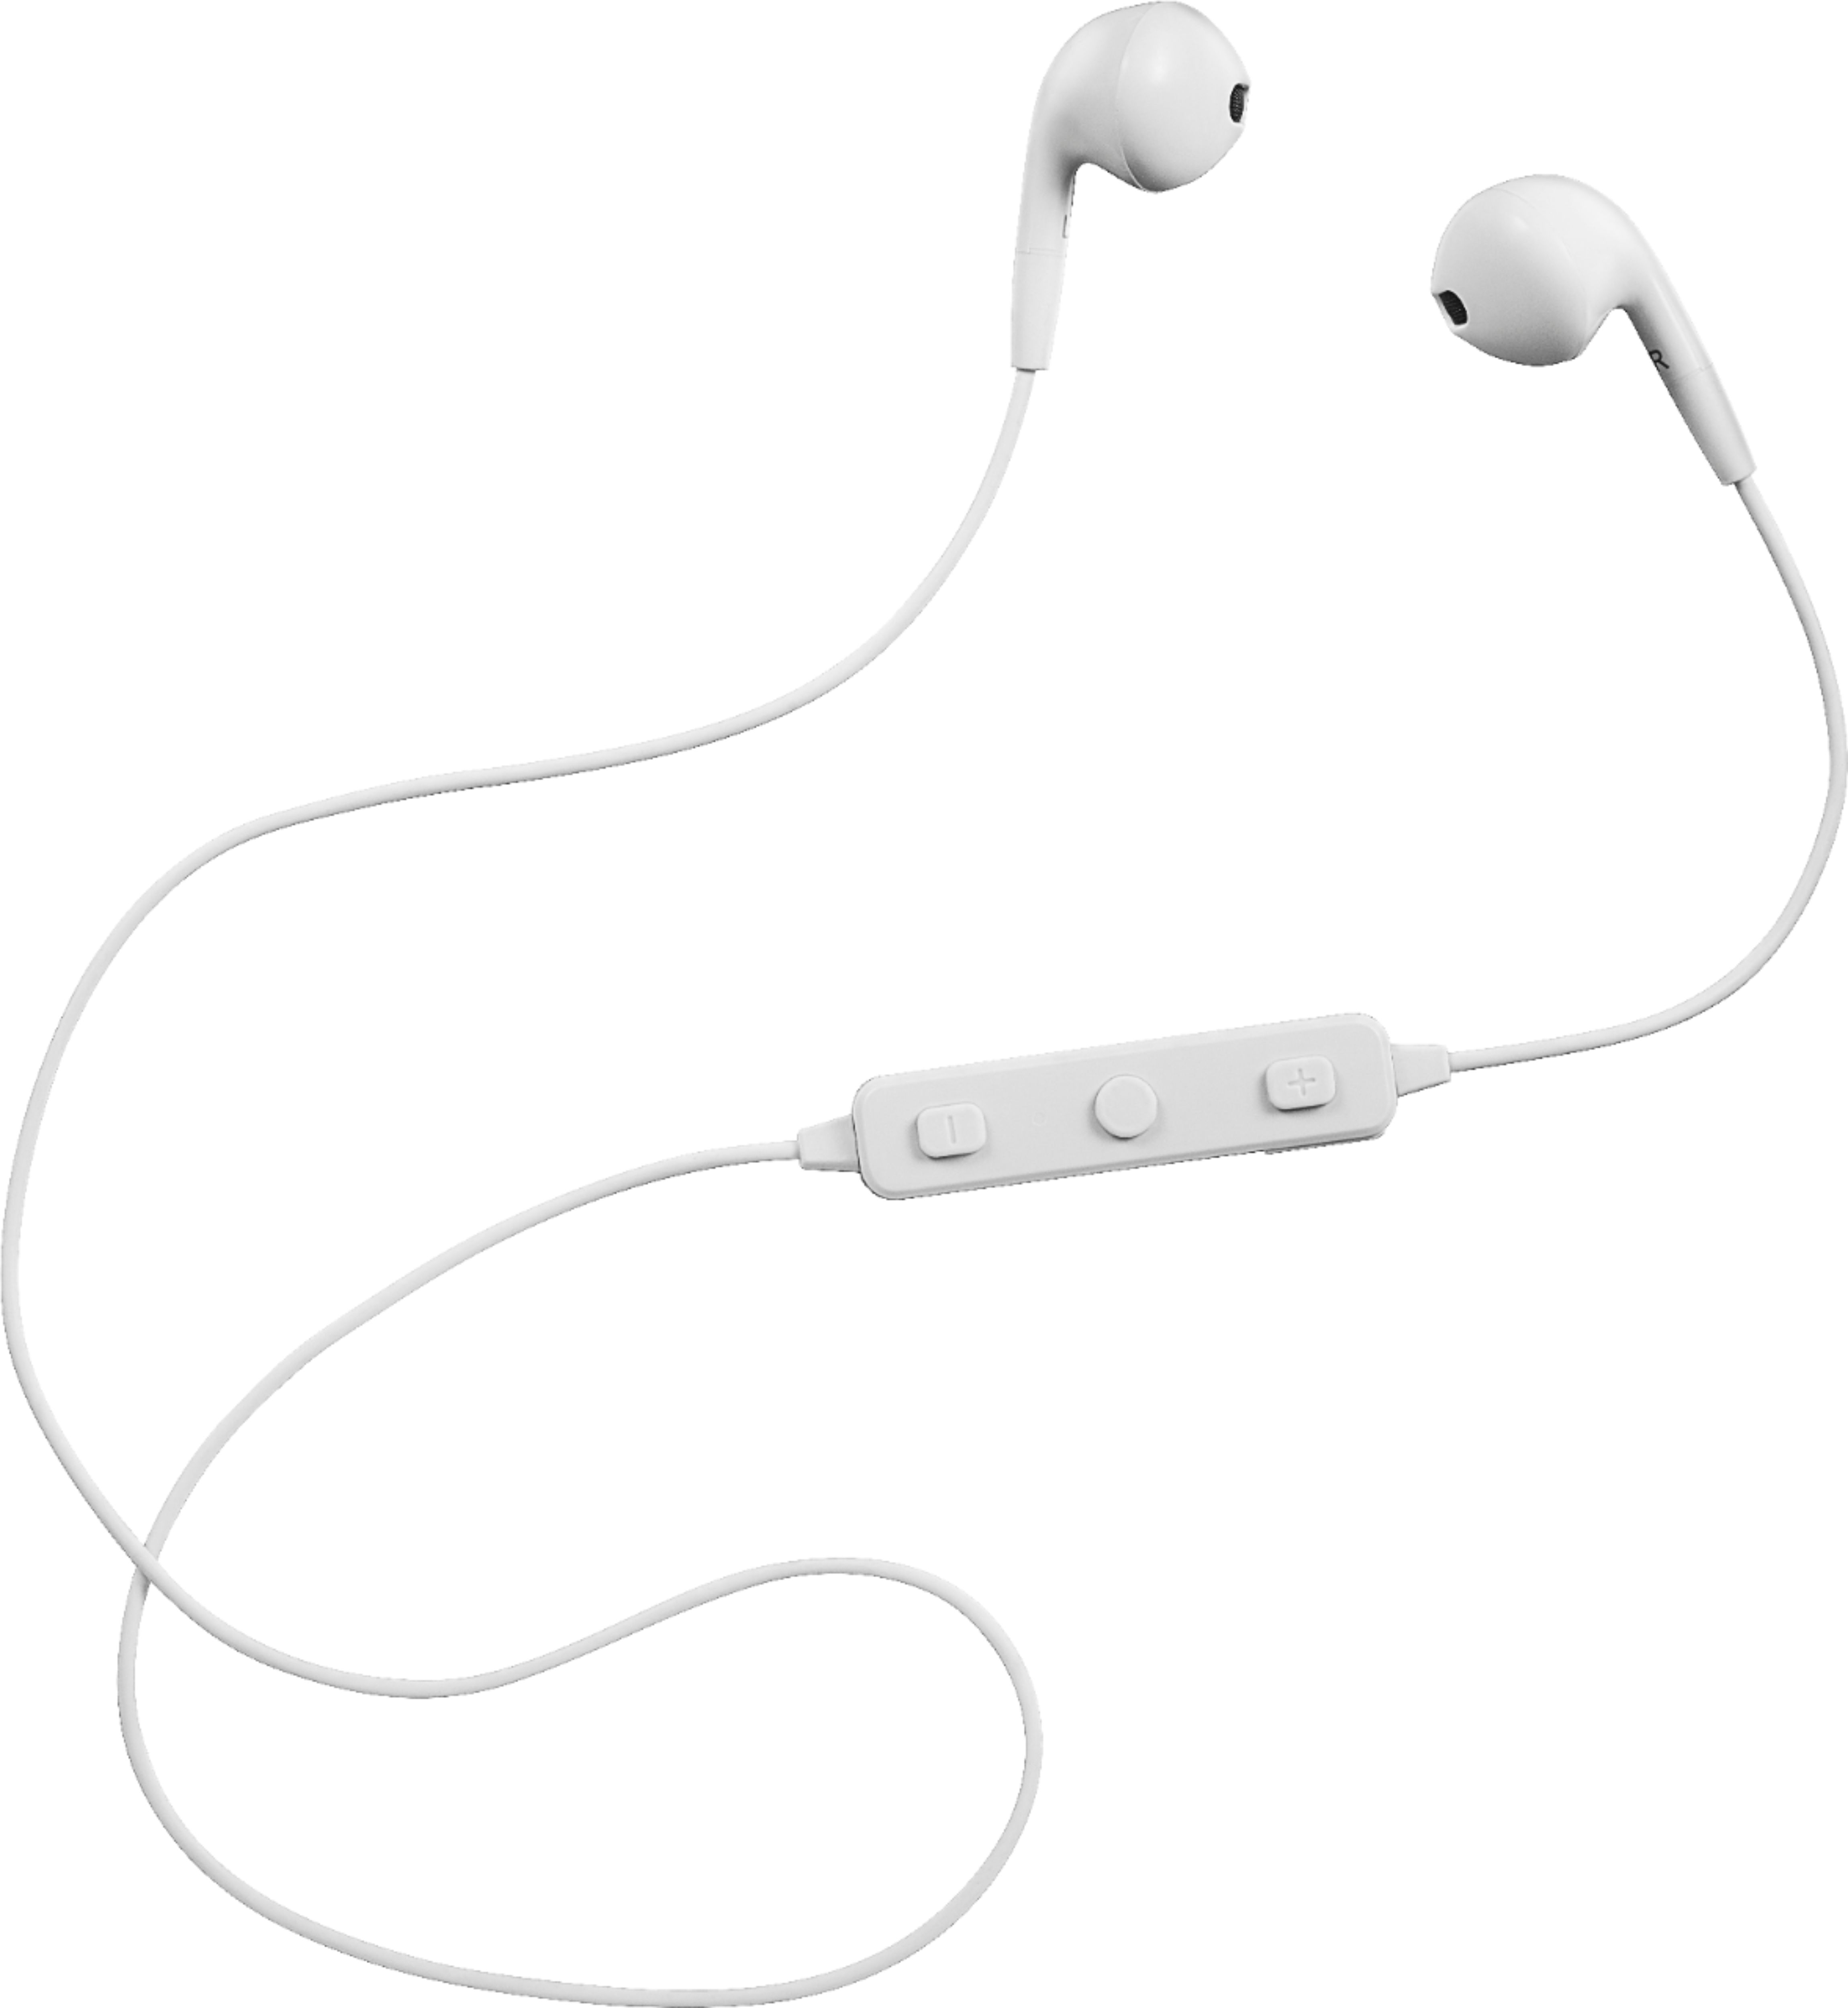 Insignia Wireless Earbud Headphones Off White Ns